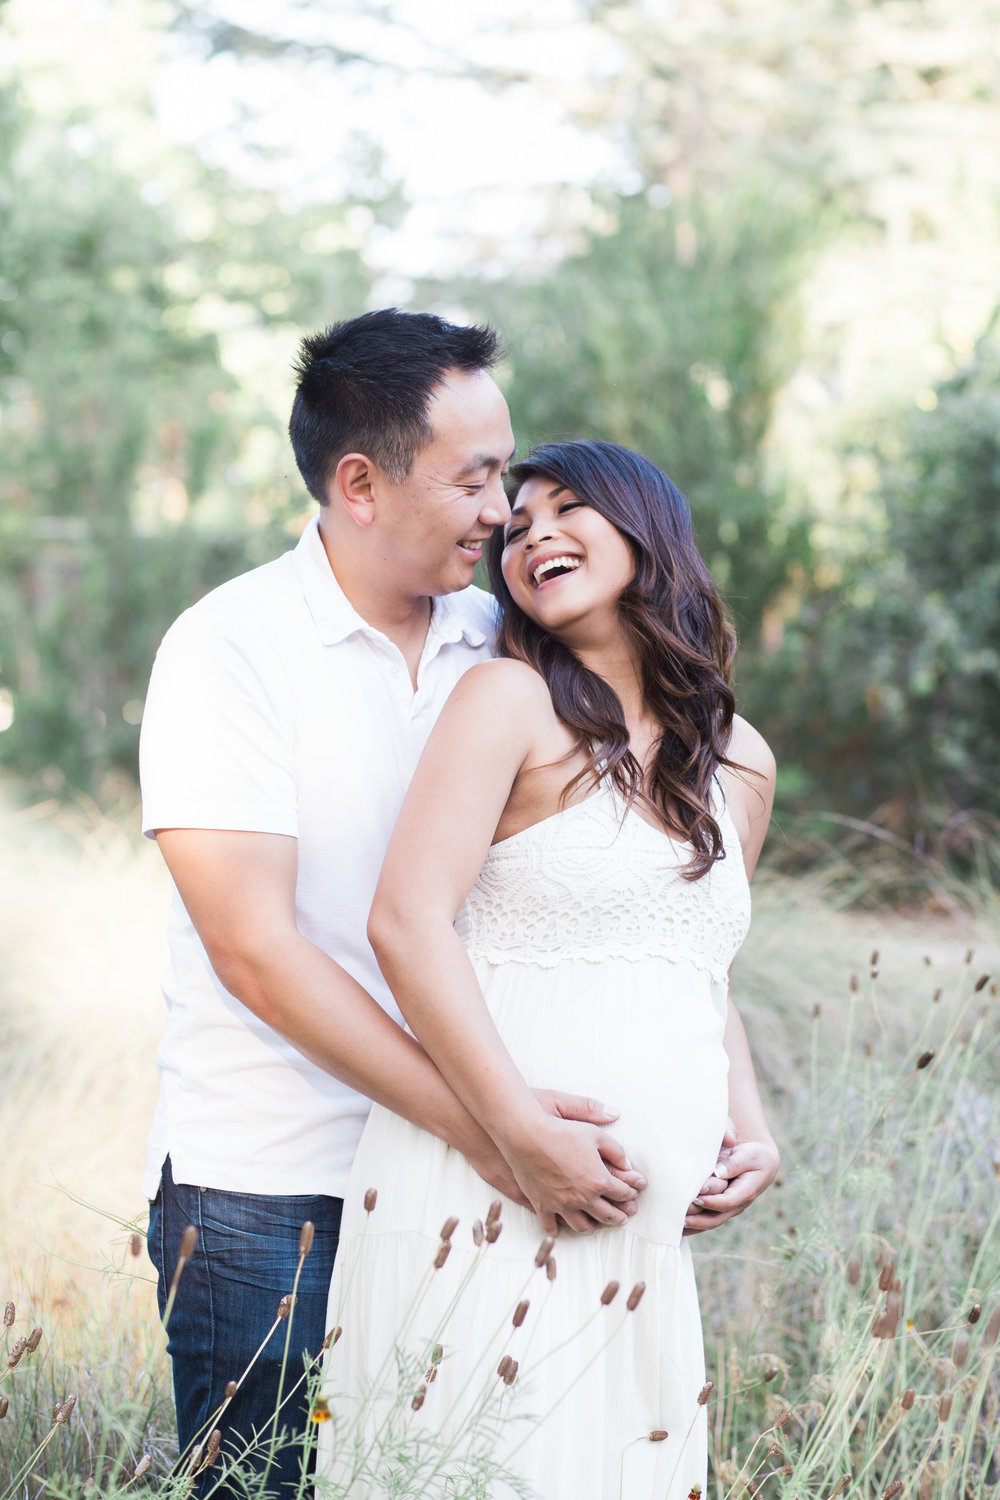 maternity_photography_sandiego_kristenmarieimagery_23.jpg